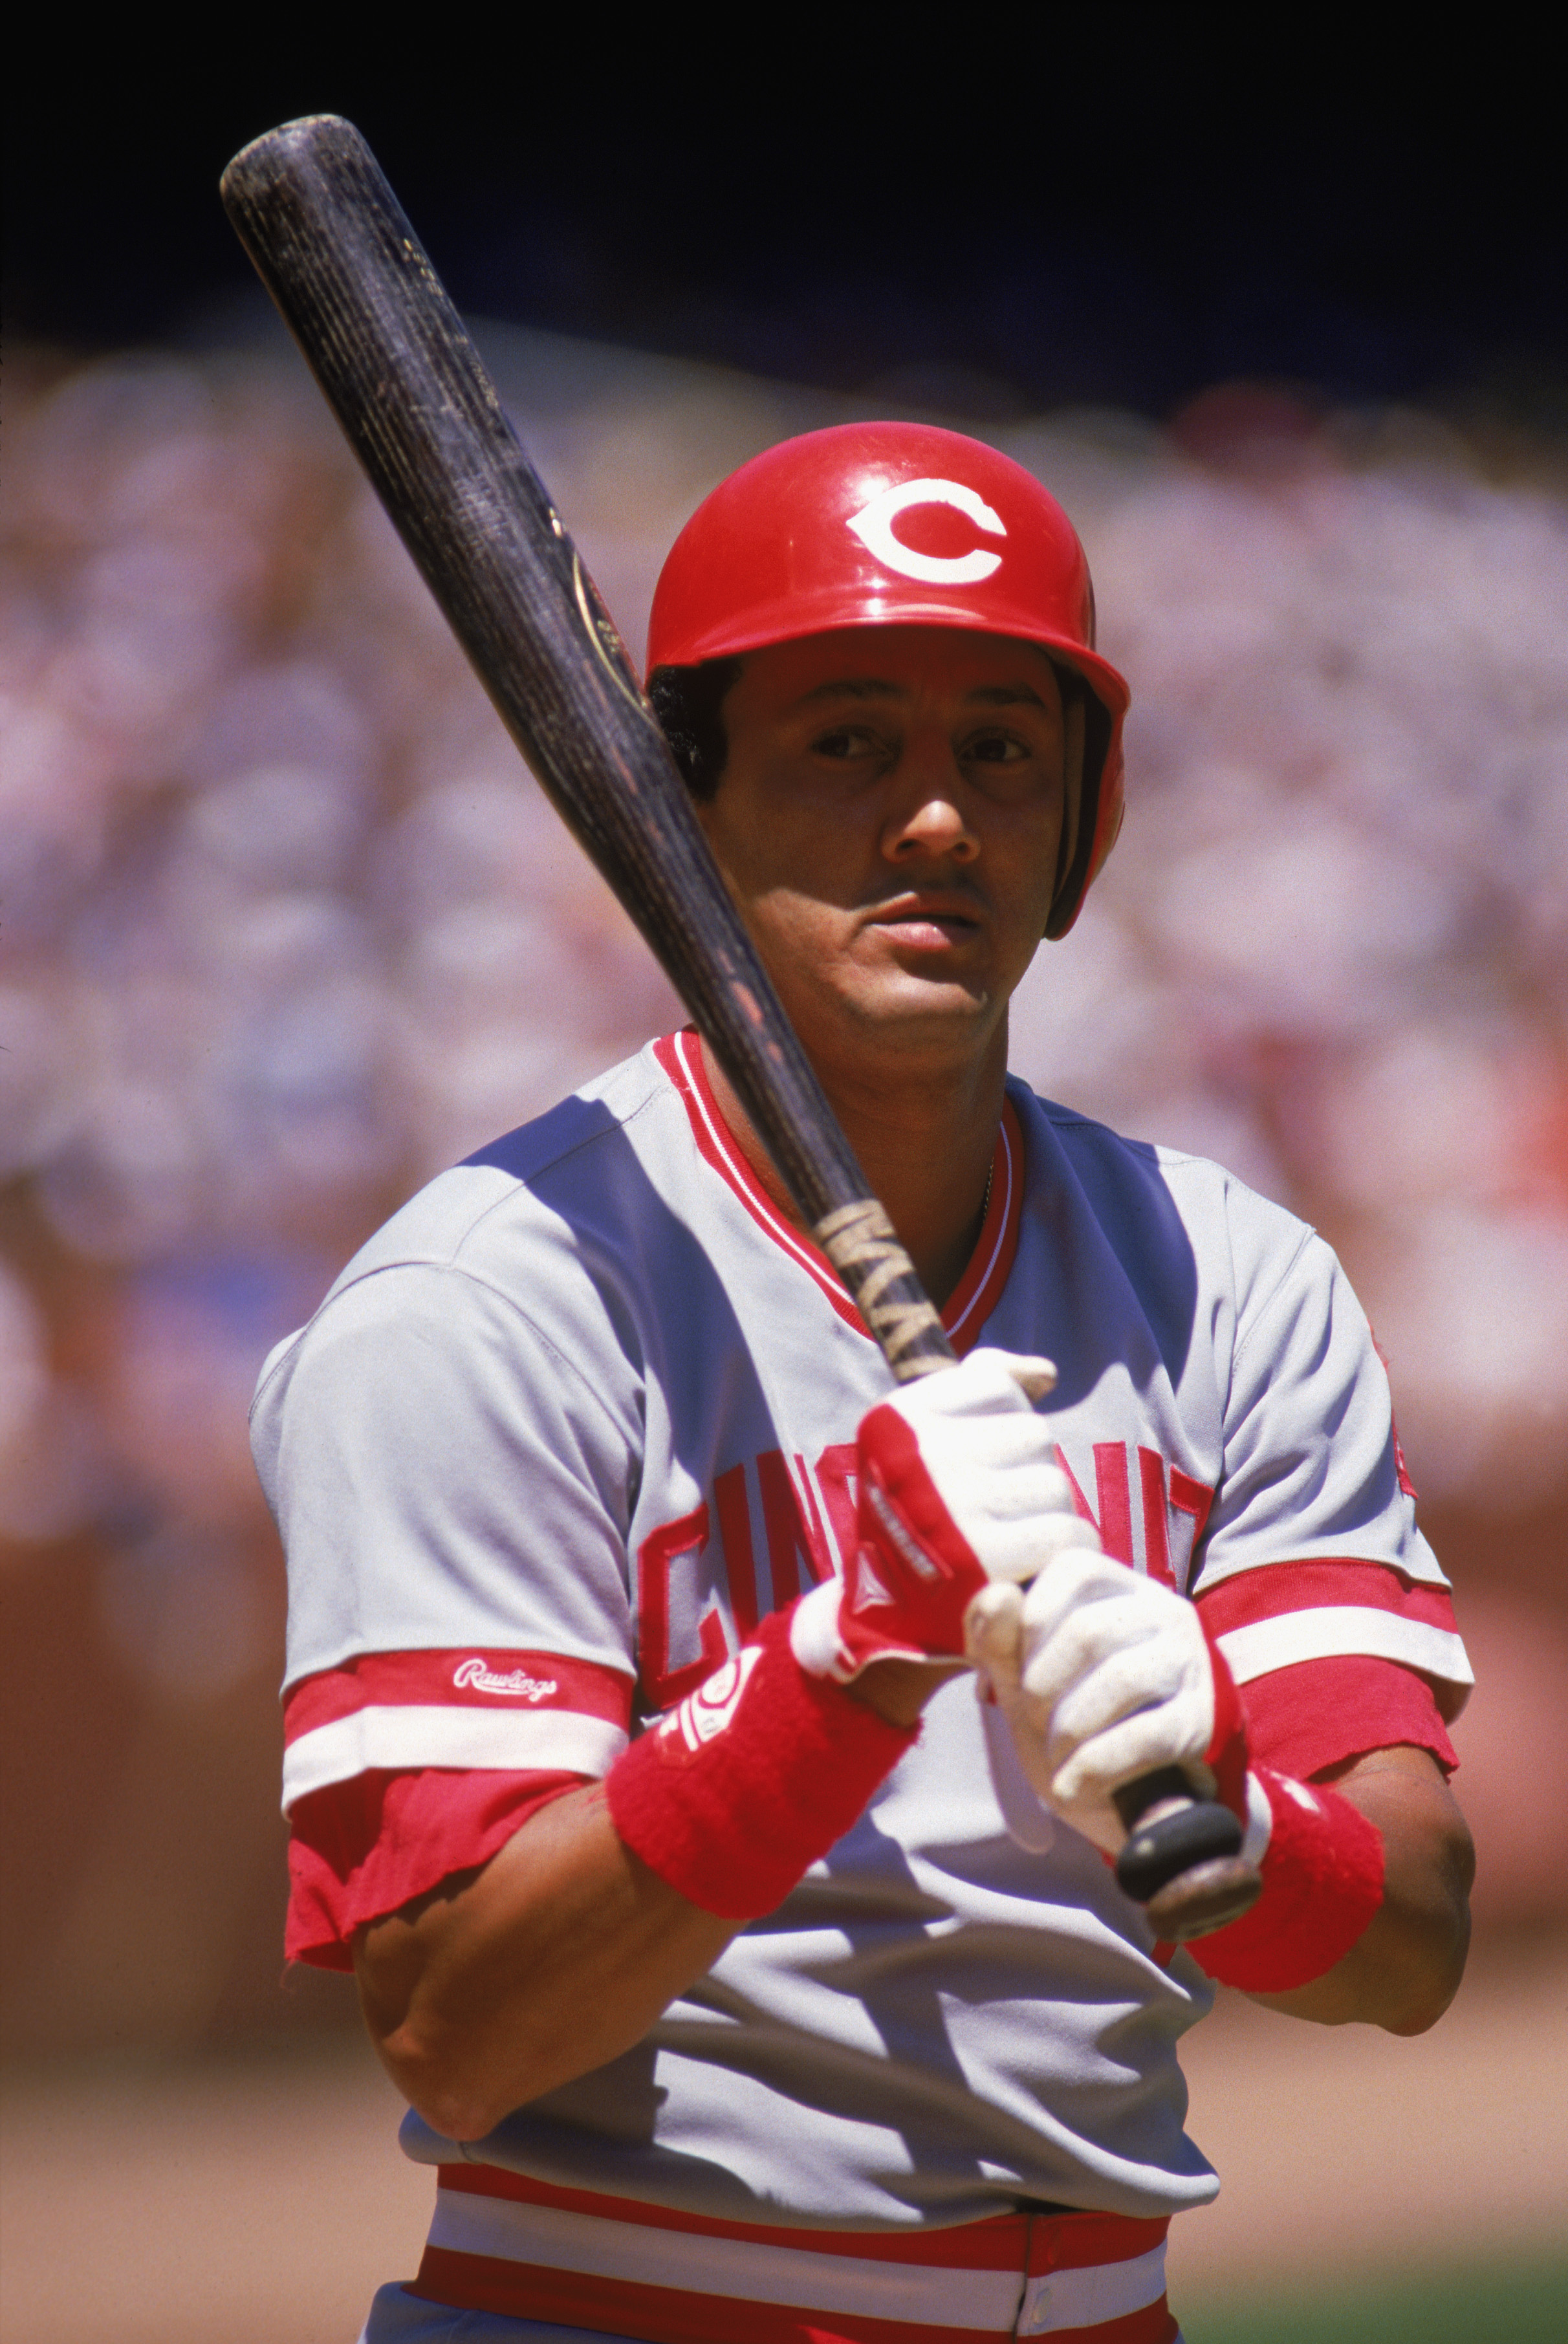 1987:  Dave Concepcion of the Cincinnati Reds grips his  bat during a MLB game in the 1987 season. ( Photo by: Otto Greule Jr/Getty Images)